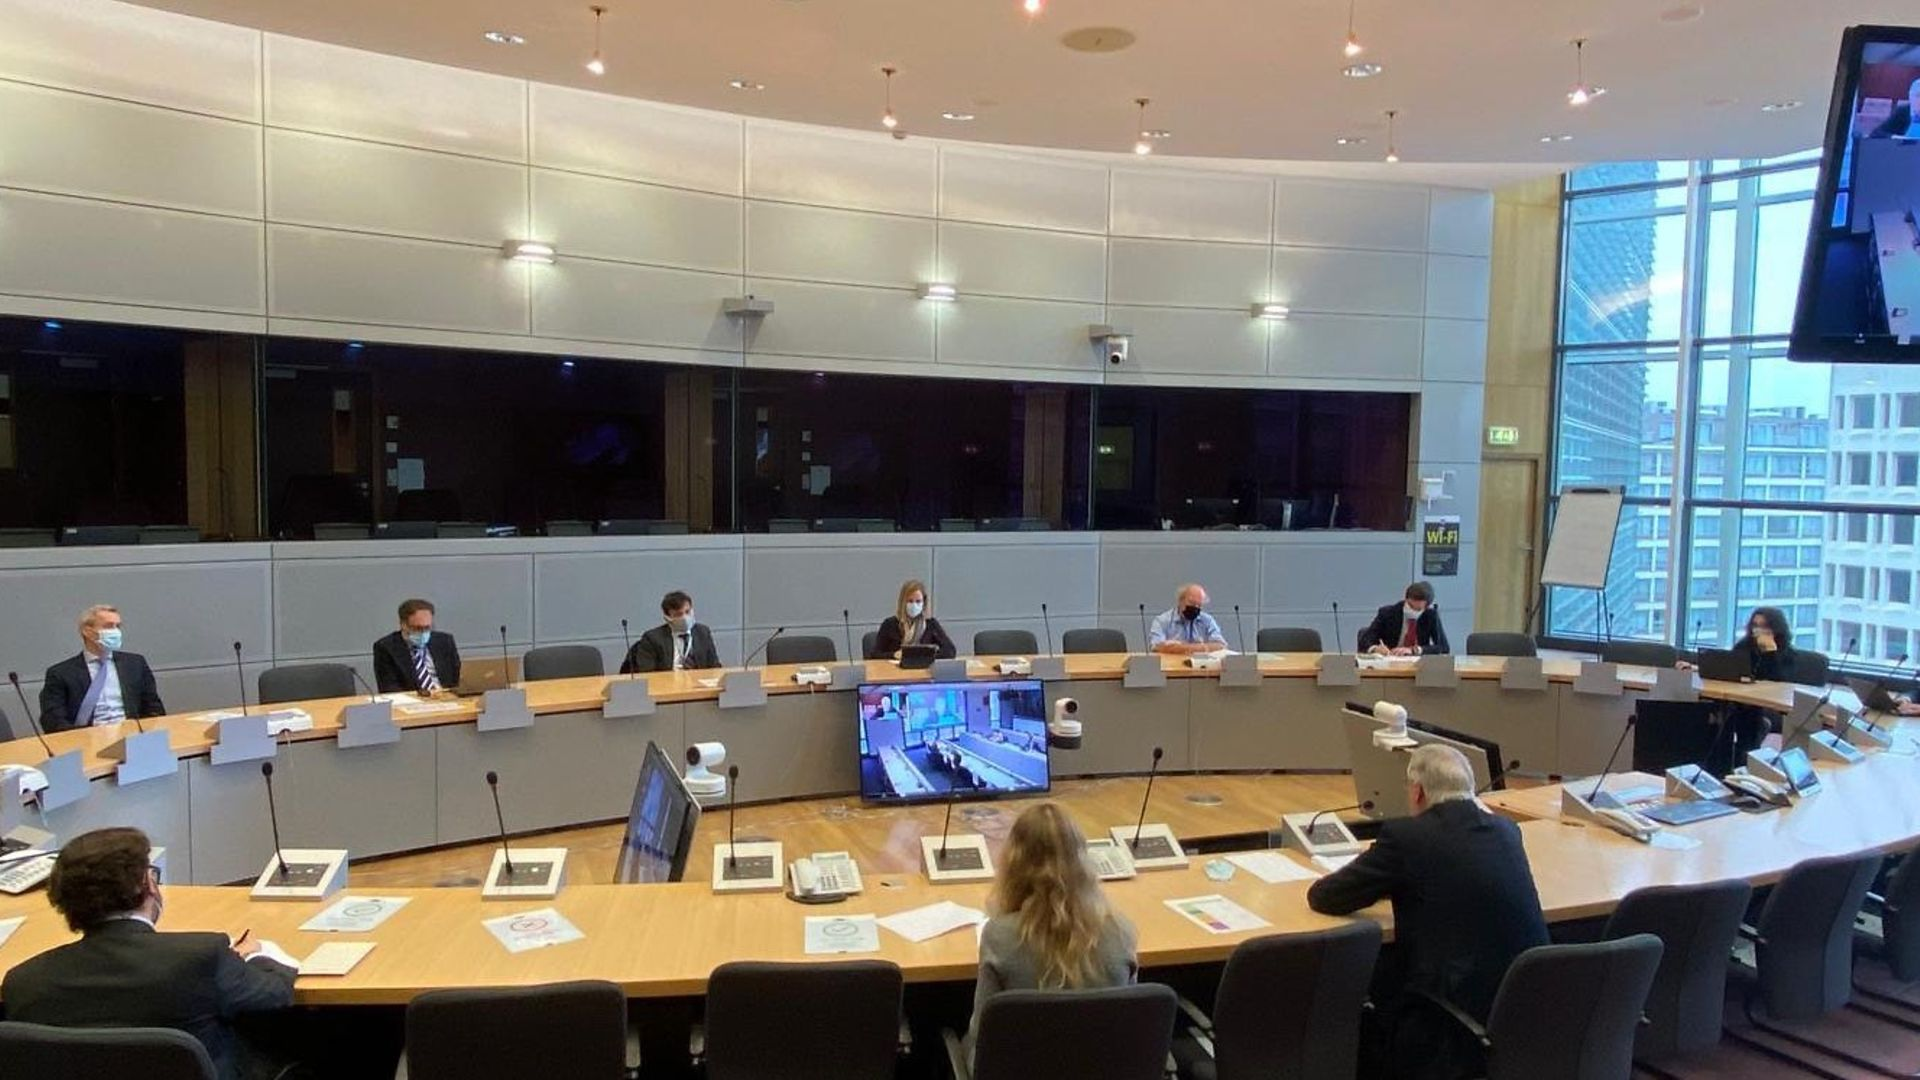 EU negotiators discuss Brexit with the UK government - Credit: Twitter